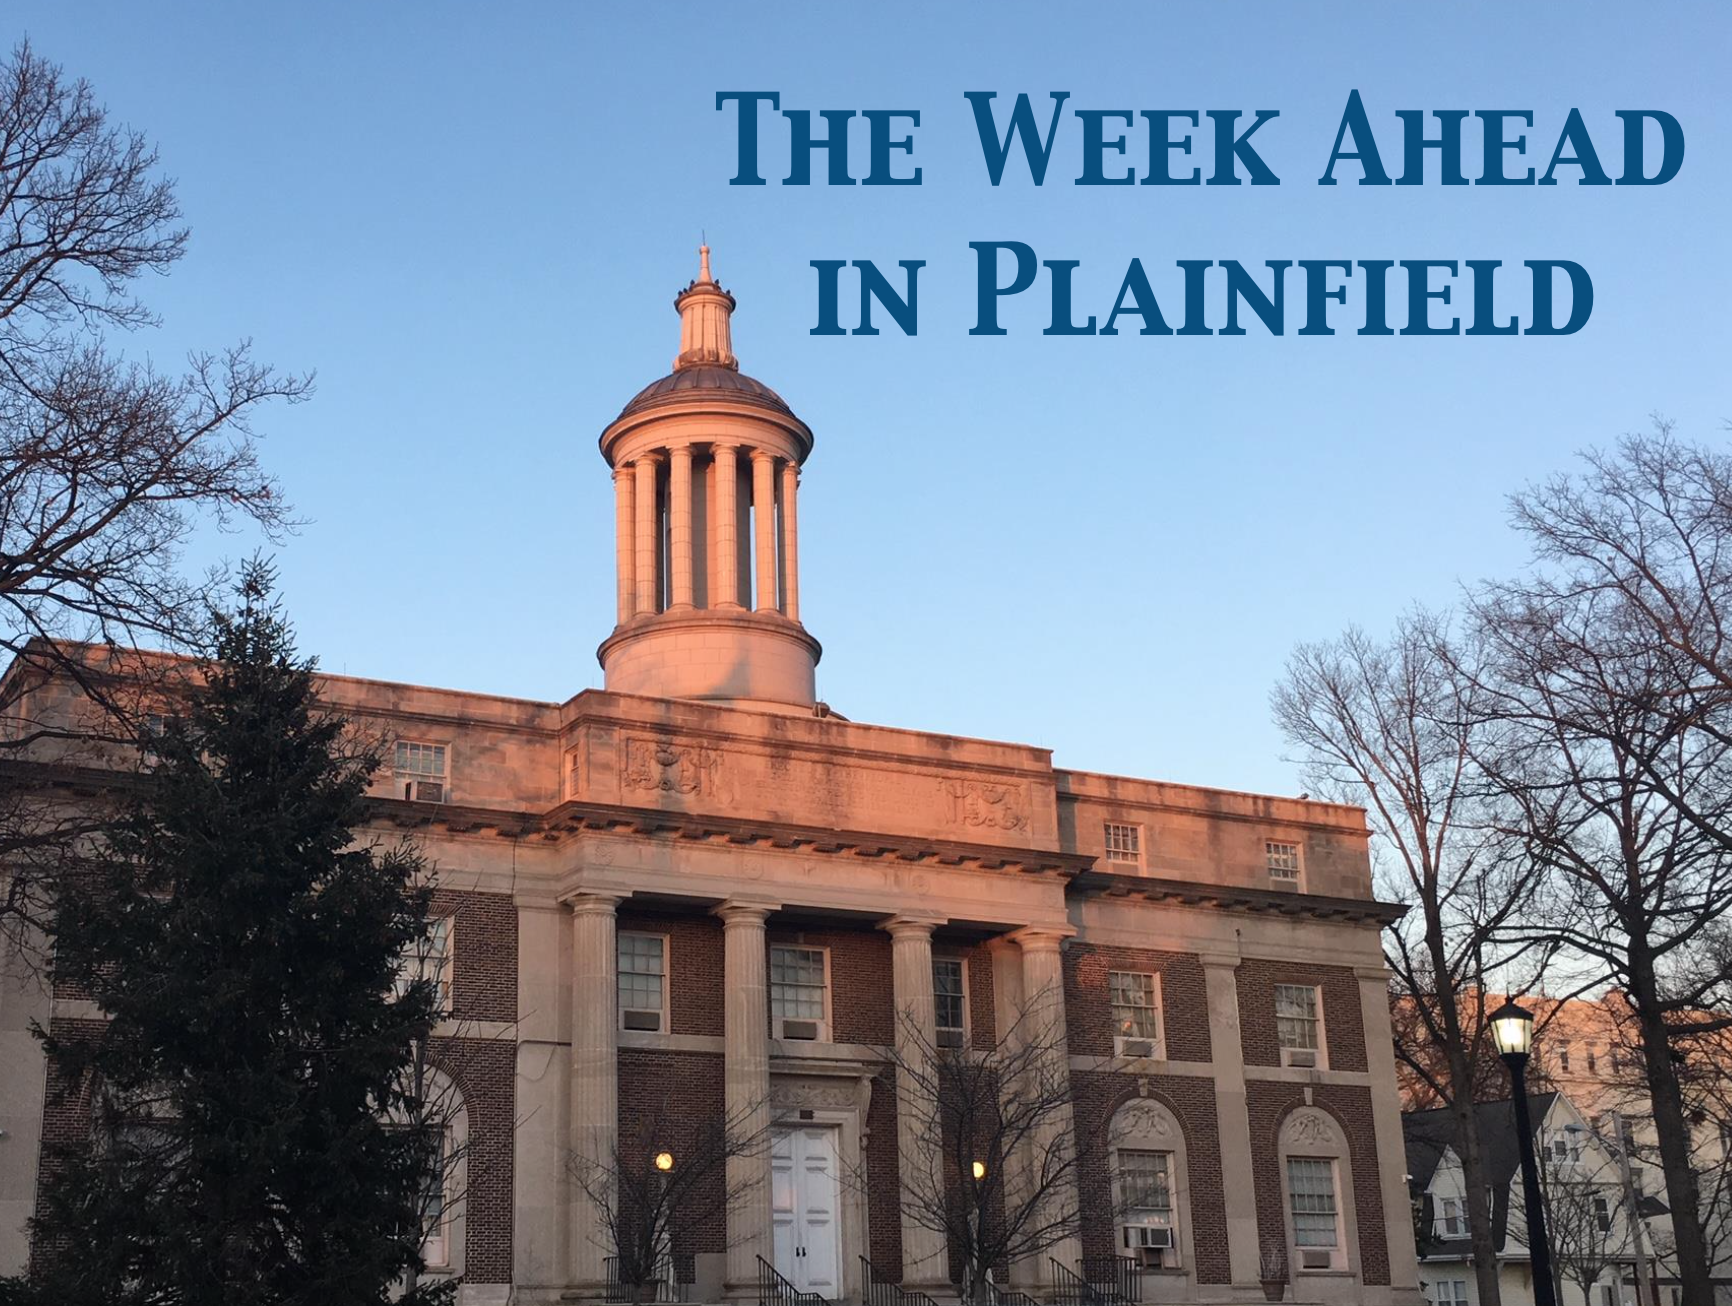 d285f11062f221a6fcf9_the_week_ahead_in_plainfield.jpg